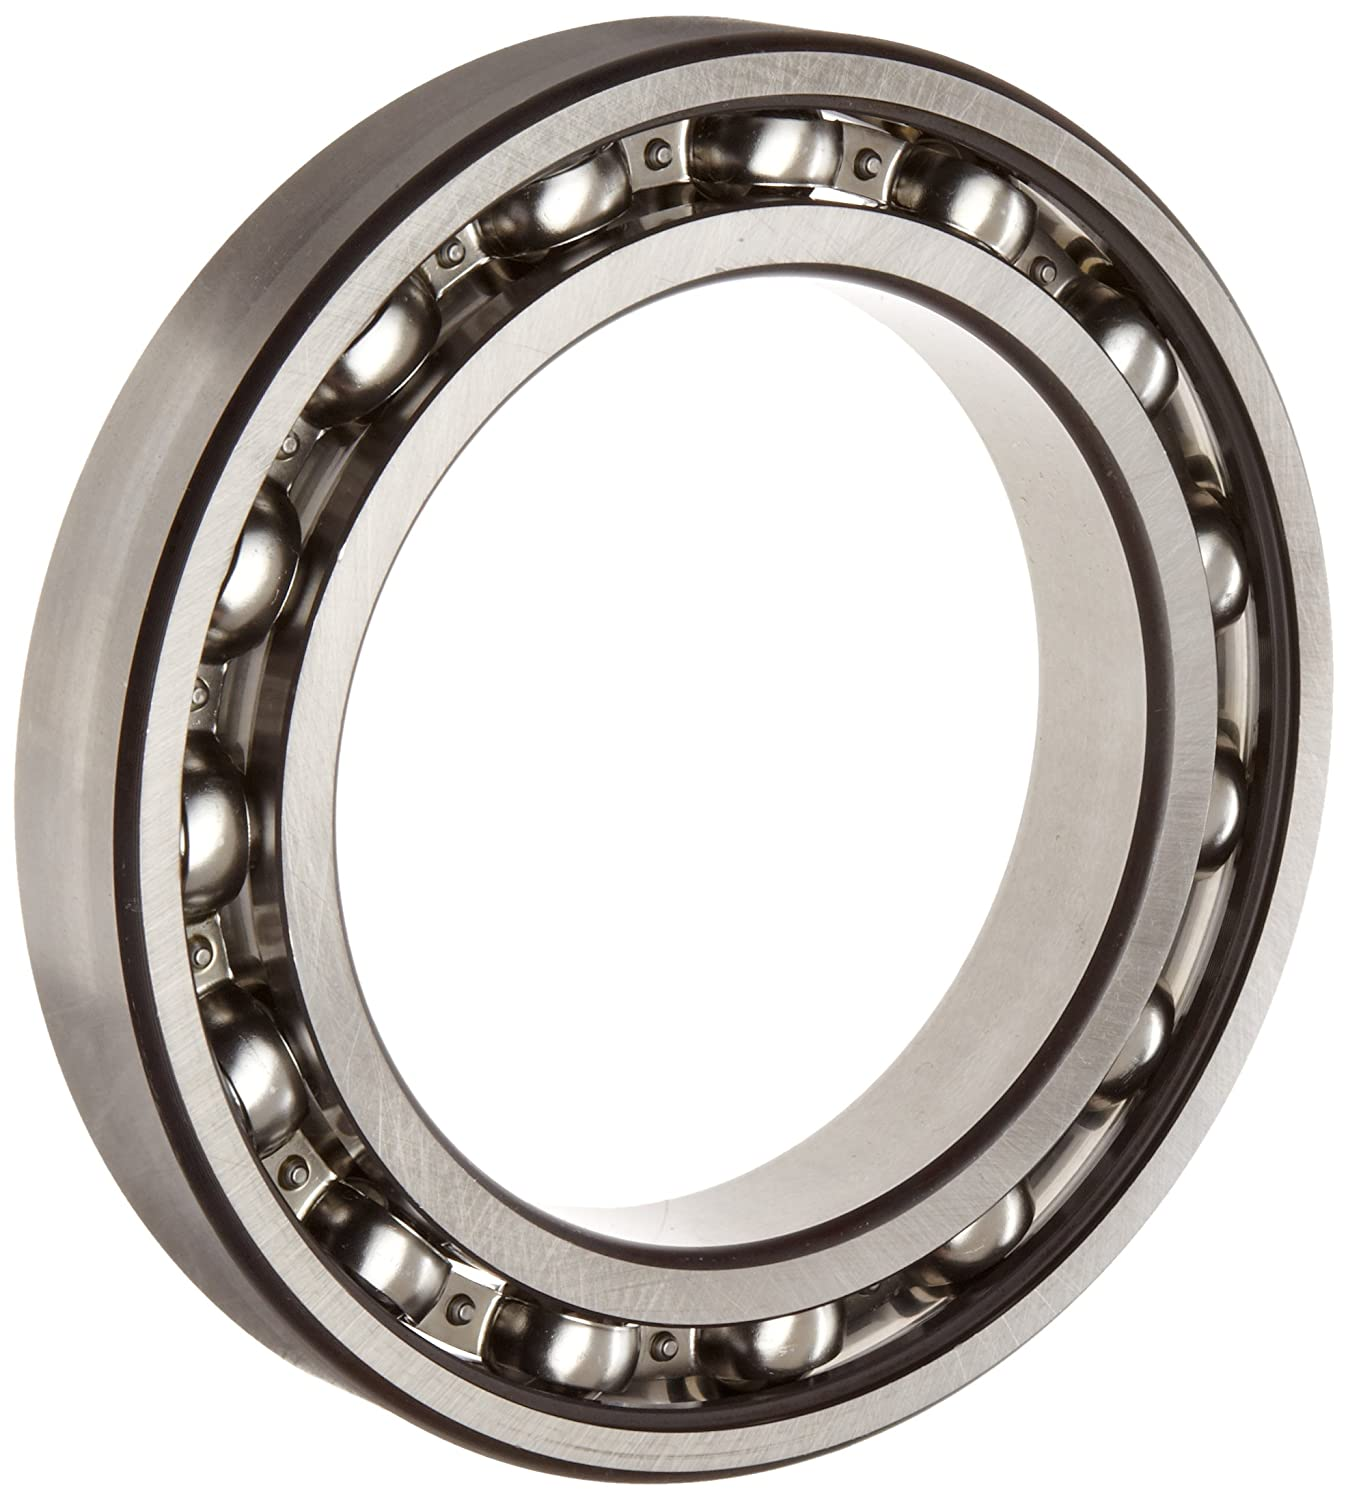 SINGLE ROW FAG 6004-C3 DEEP GROOVE BALL BEARING OPEN STEEL CAGE C3 CLEARA...